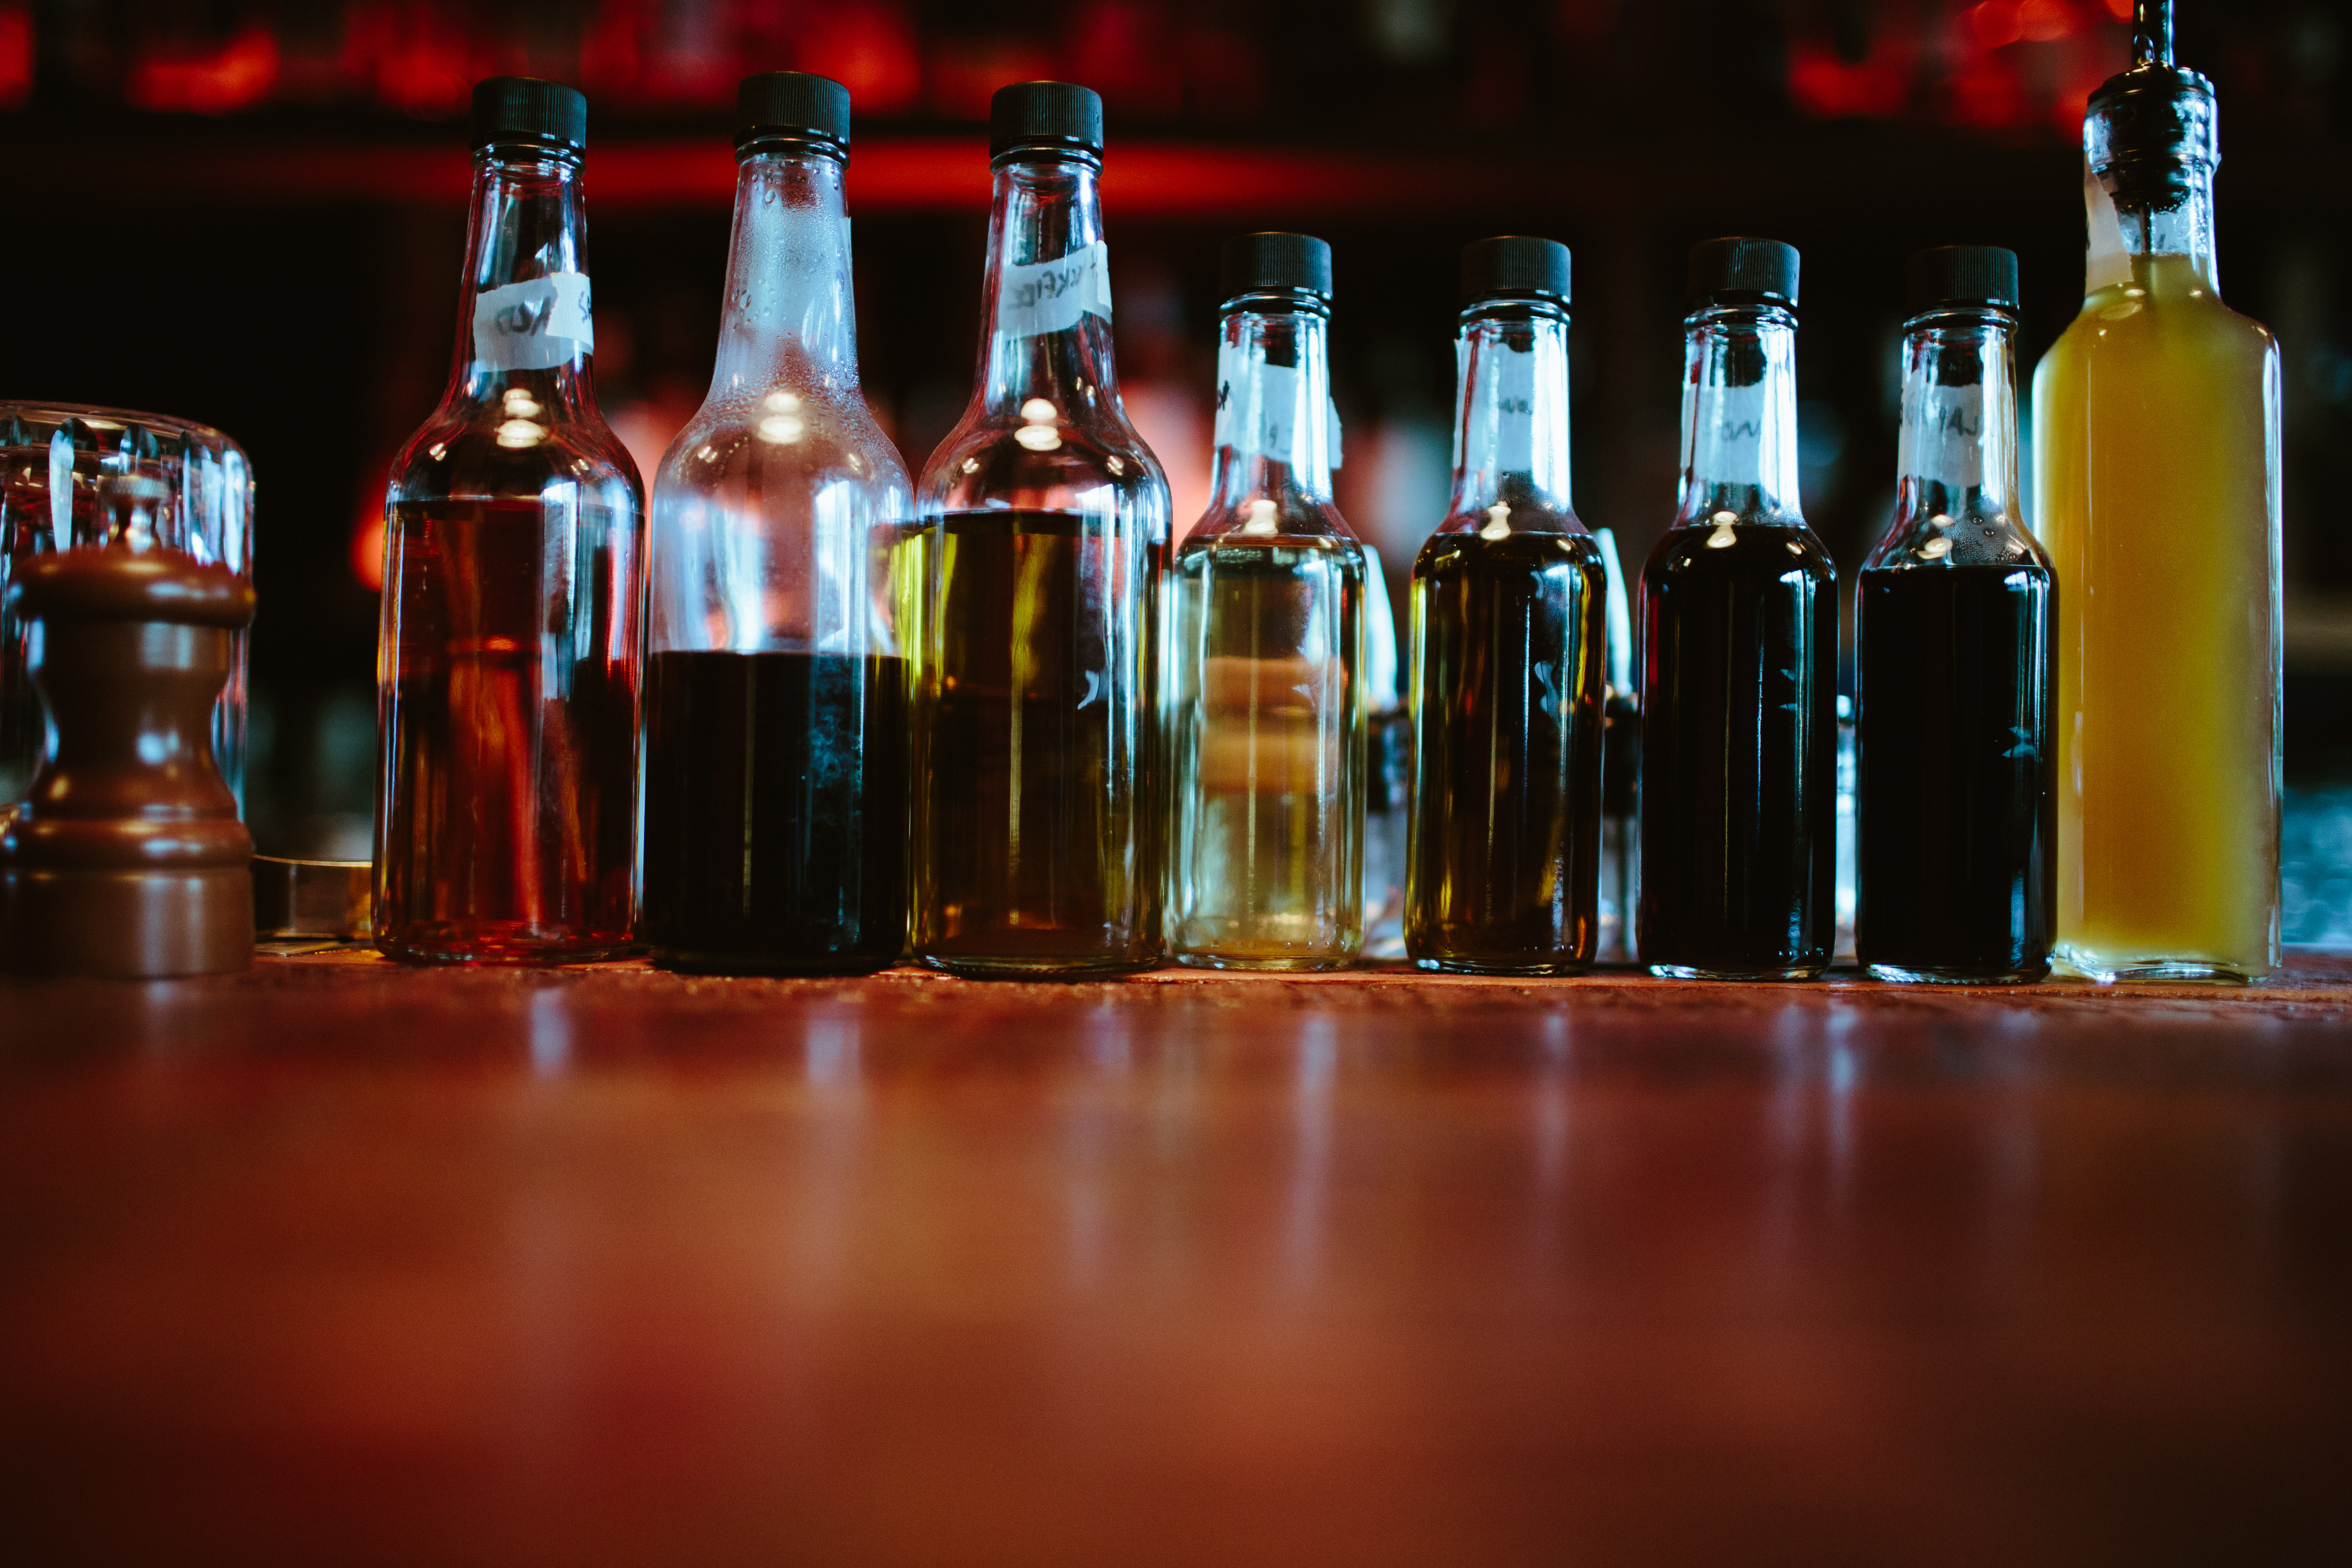 Tinctures of housemade bitters